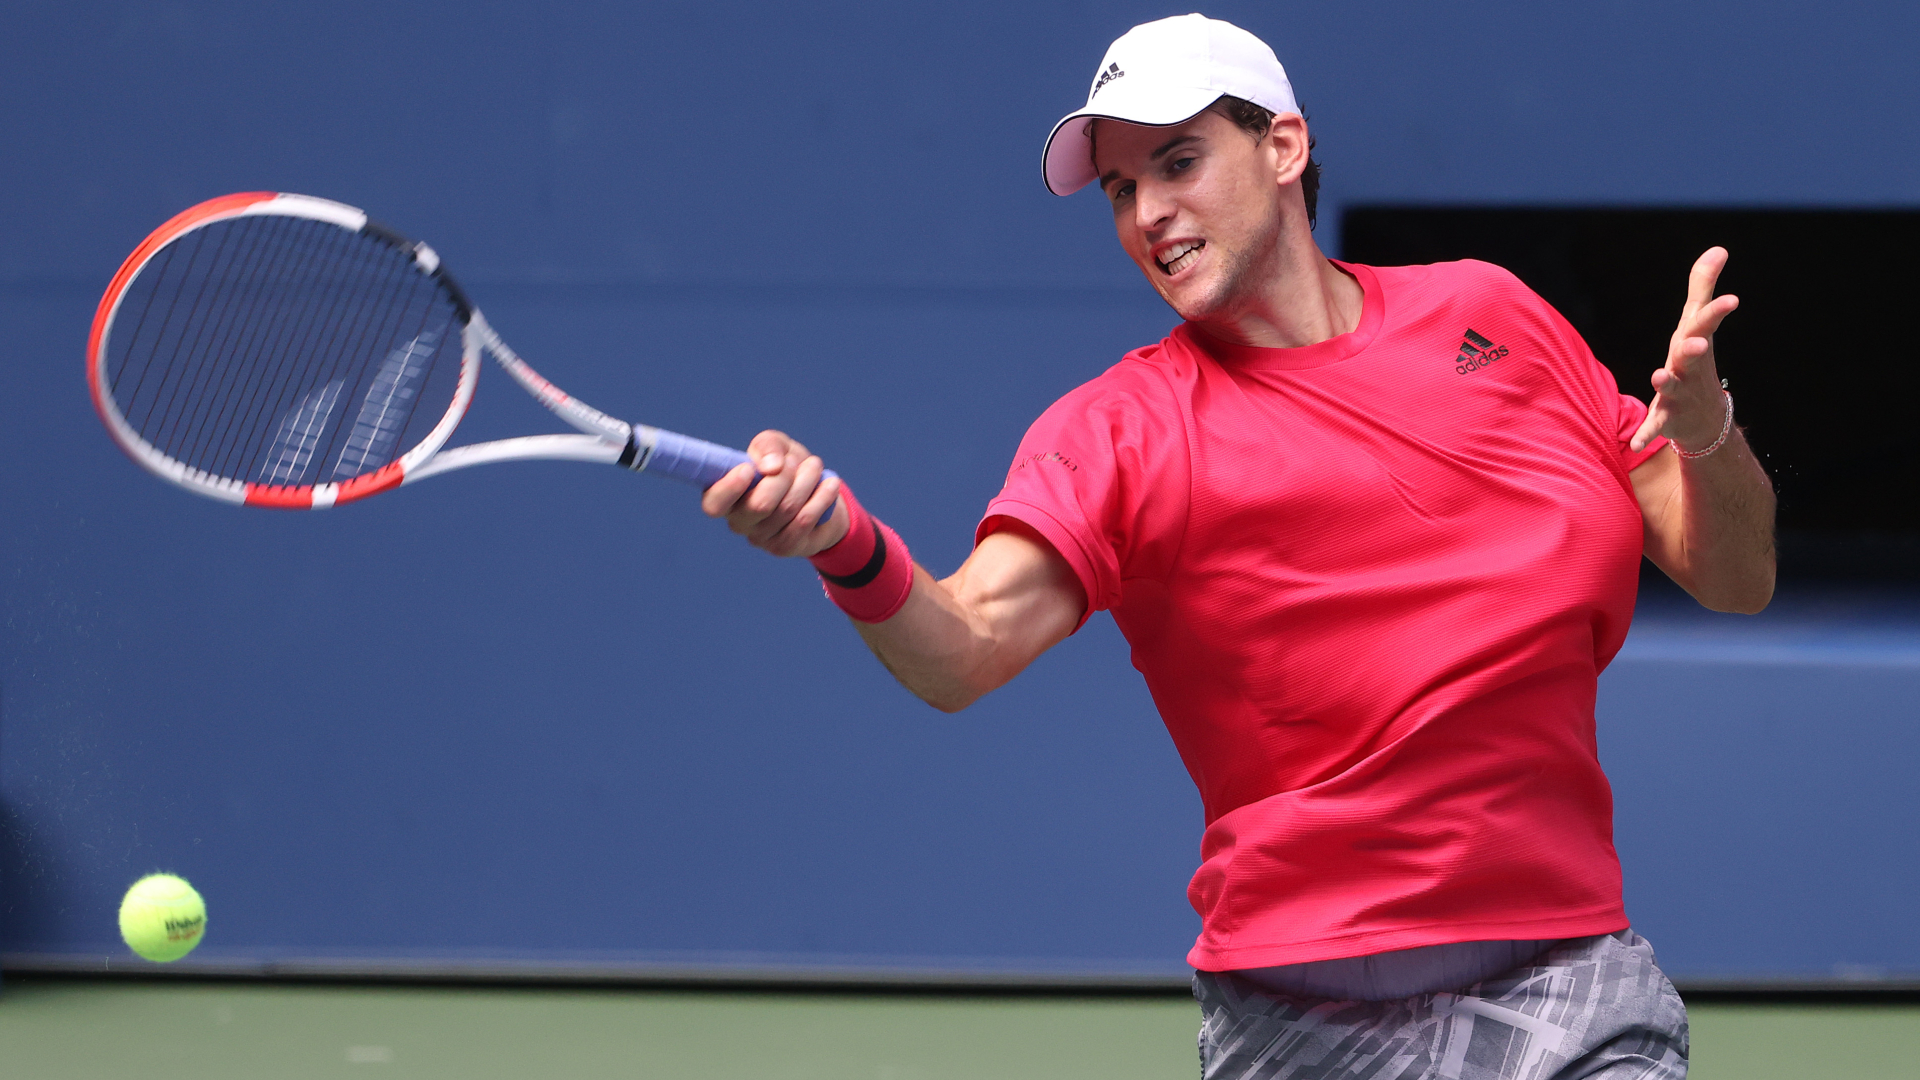 US Open 2020: Dominic Thiem annoyed by Red Bull incident 1